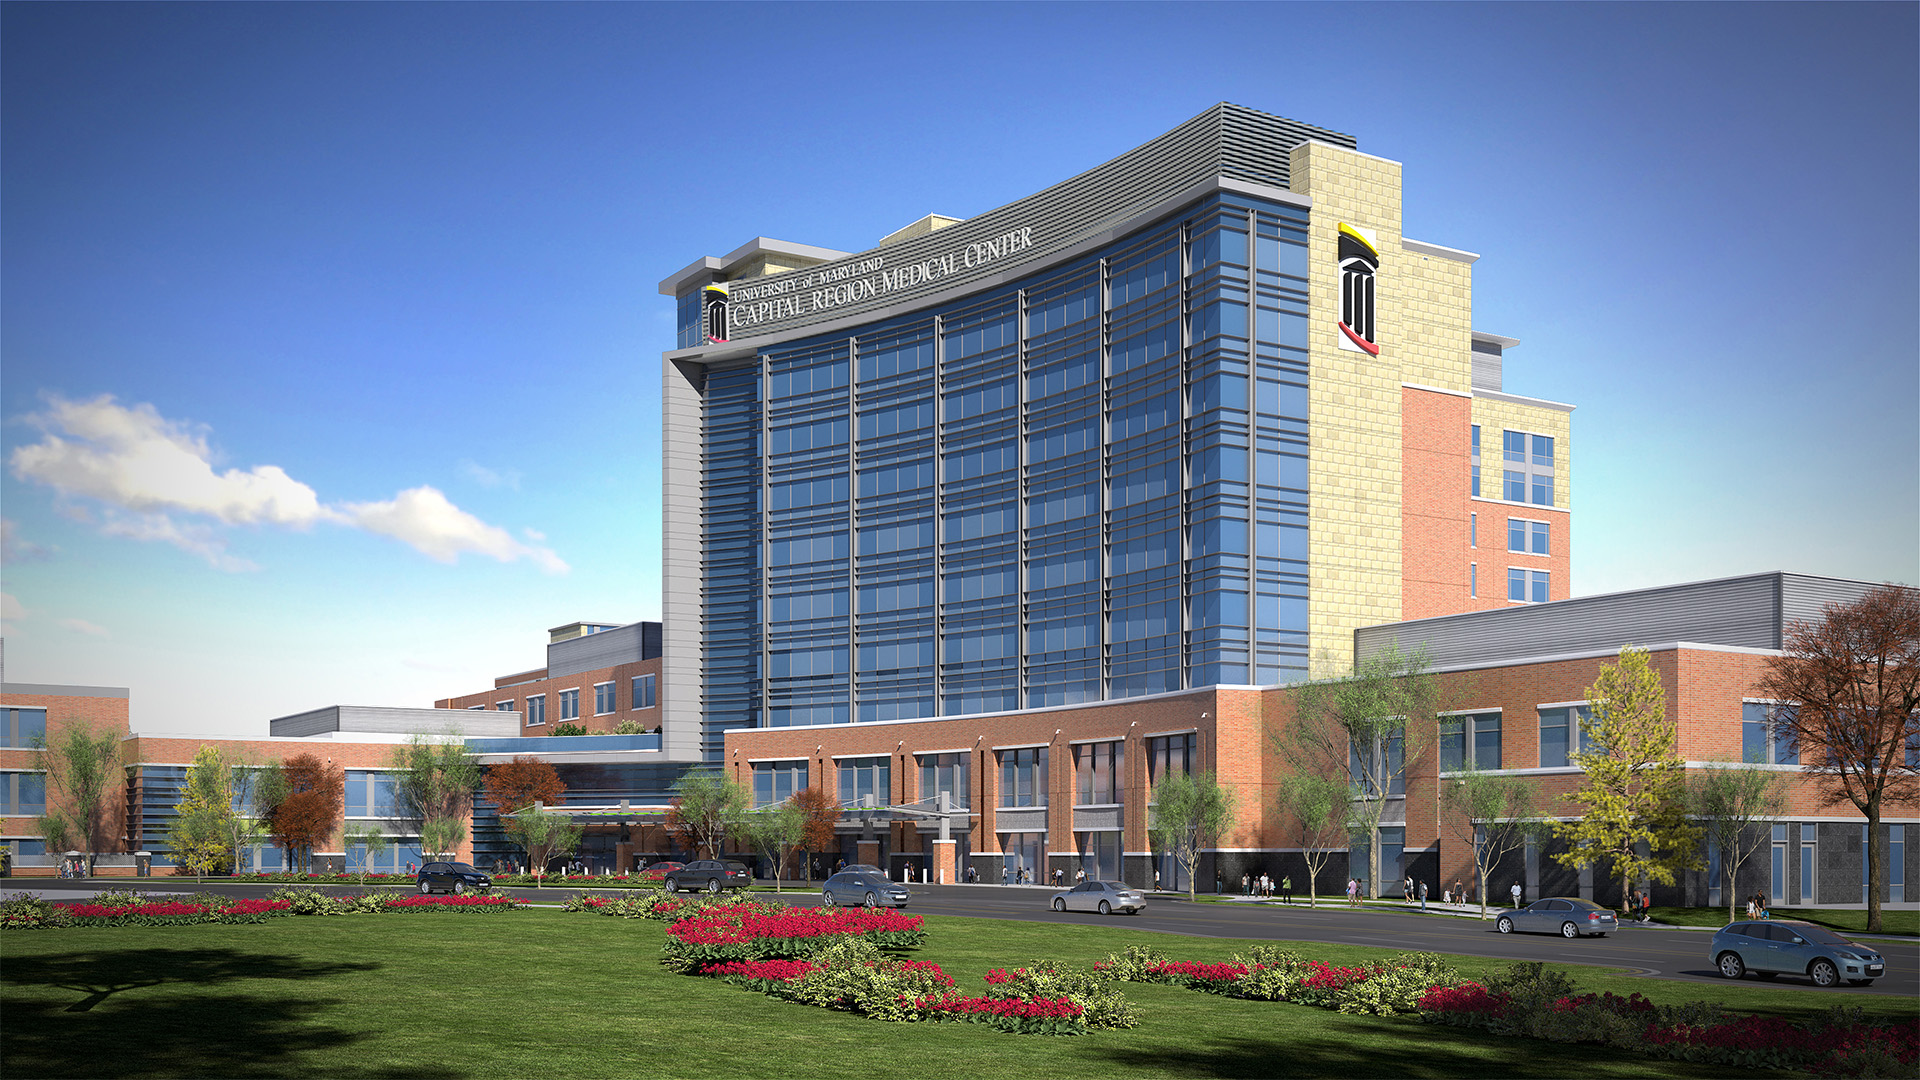 University of Maryland Capital Region Medical Center